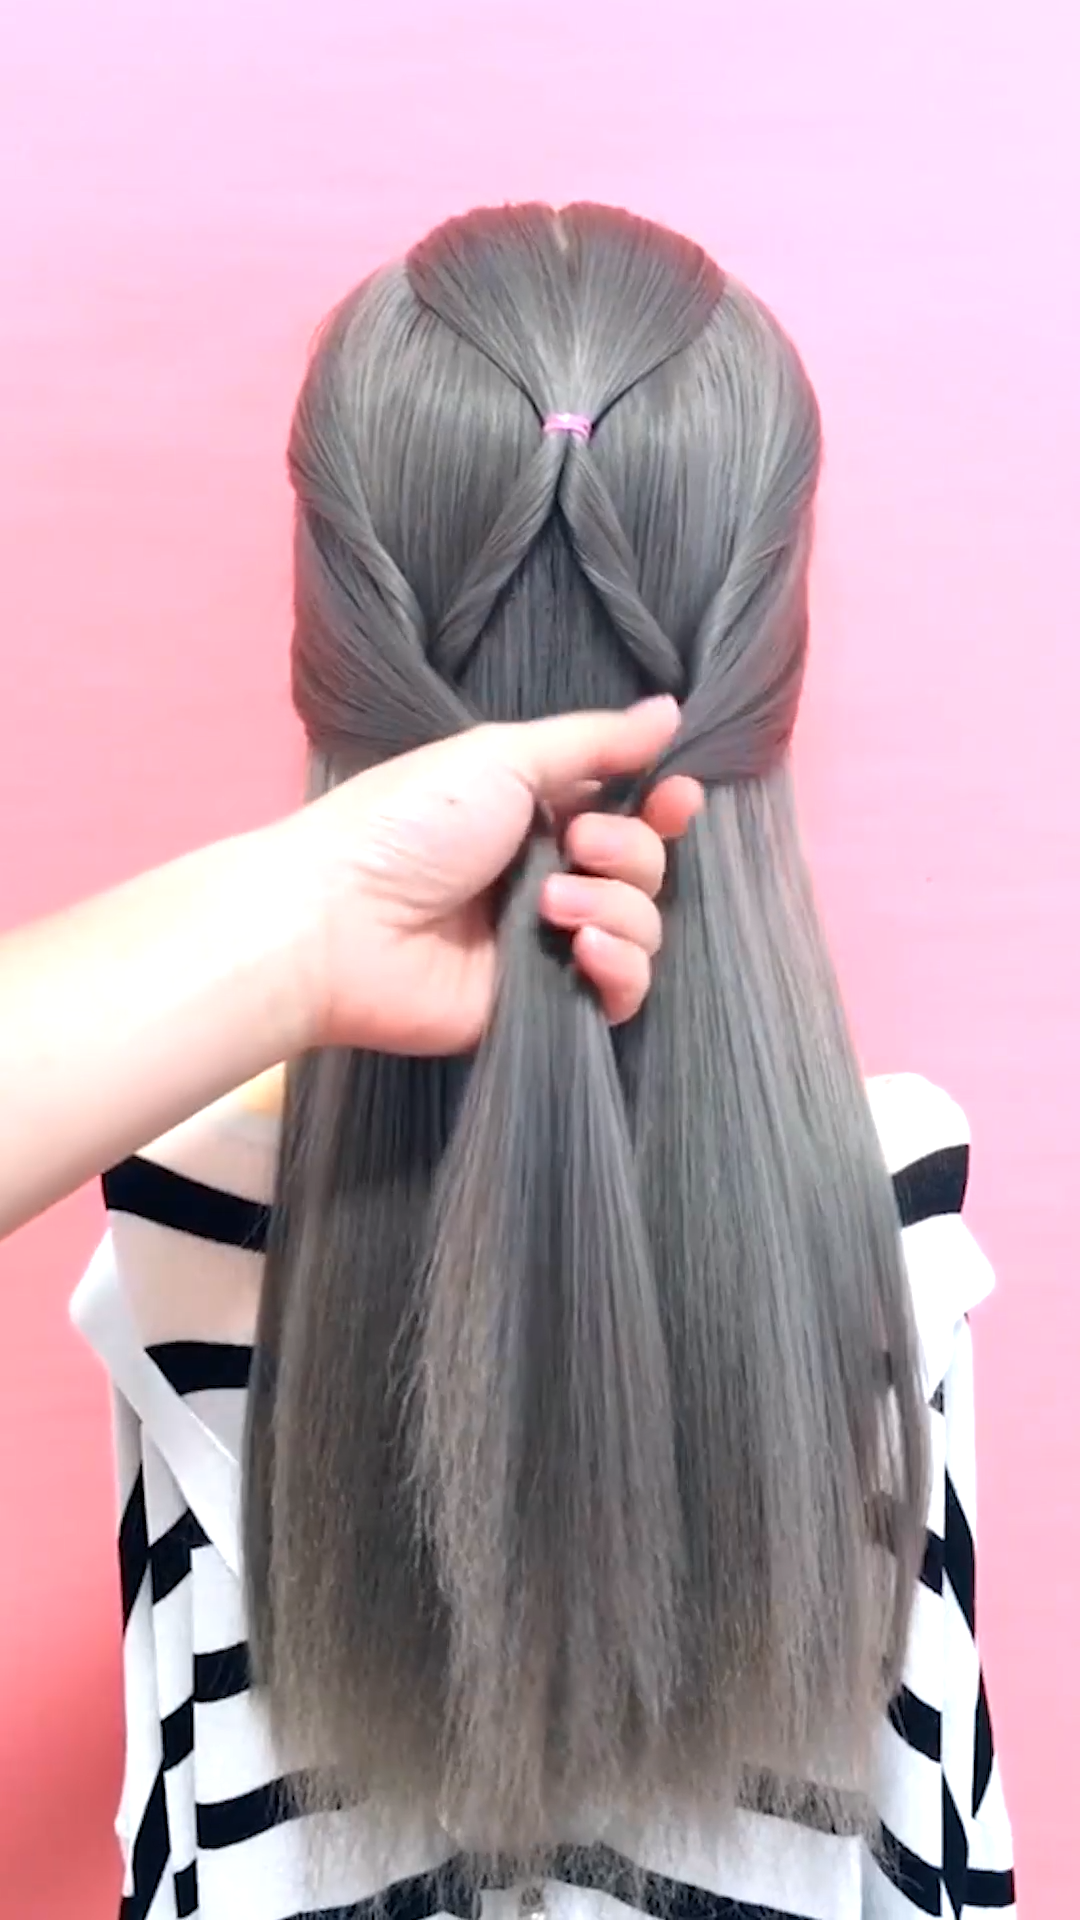 Hairstyle Videos For Long Hair Wedding Hairstyle Videos For Long Hair In 2020 Hair Videos Wedding Hairstyles Videos Easy Hairstyle Video